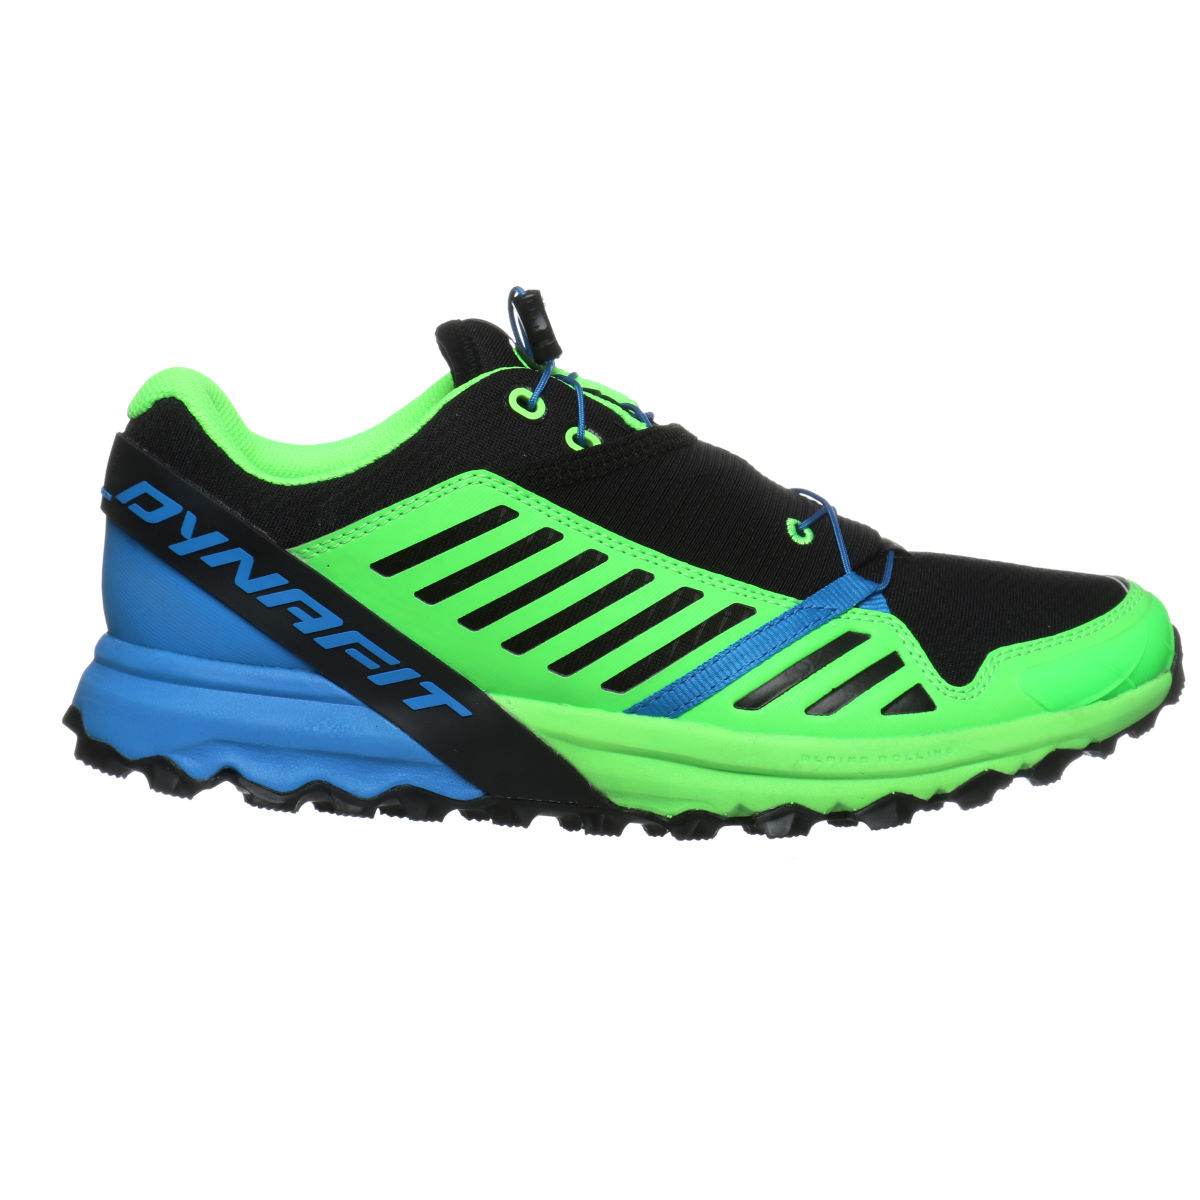 Chaussures Dynafit Alpine Pro - 9,5 UK Blue/Green